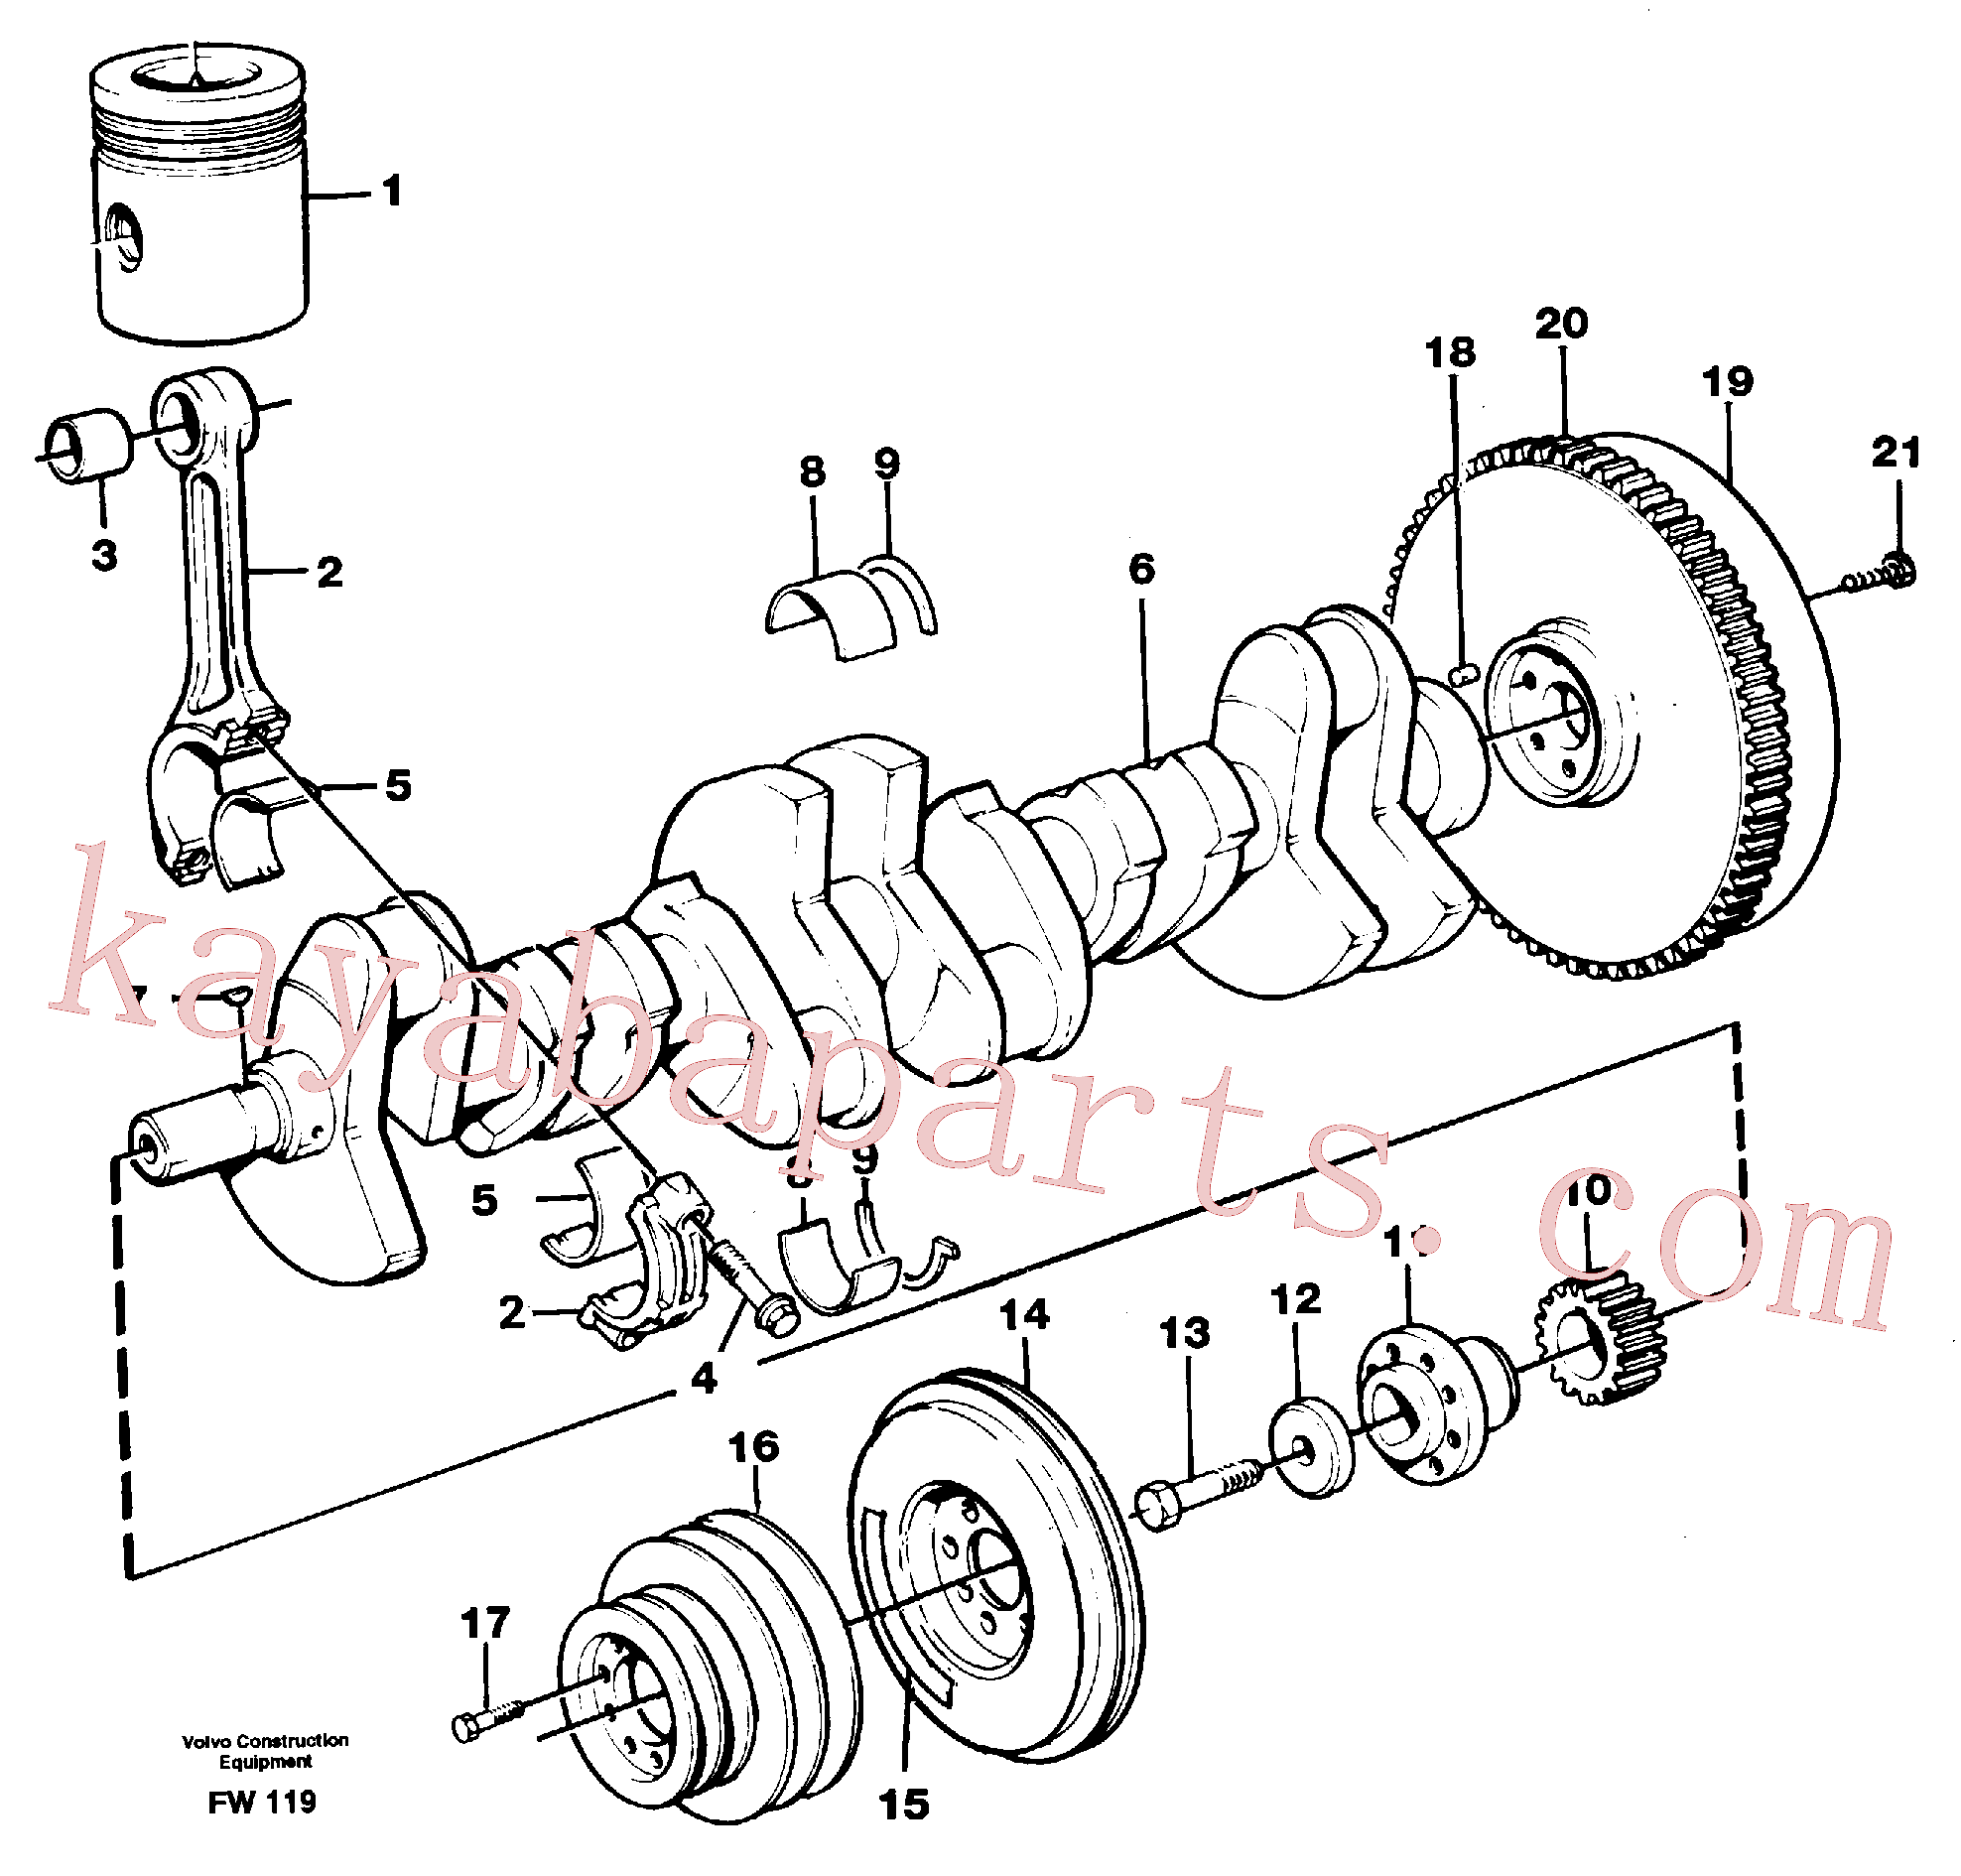 SA9324-21617 for Volvo Crankshaft and related parts(FW119 assembly)